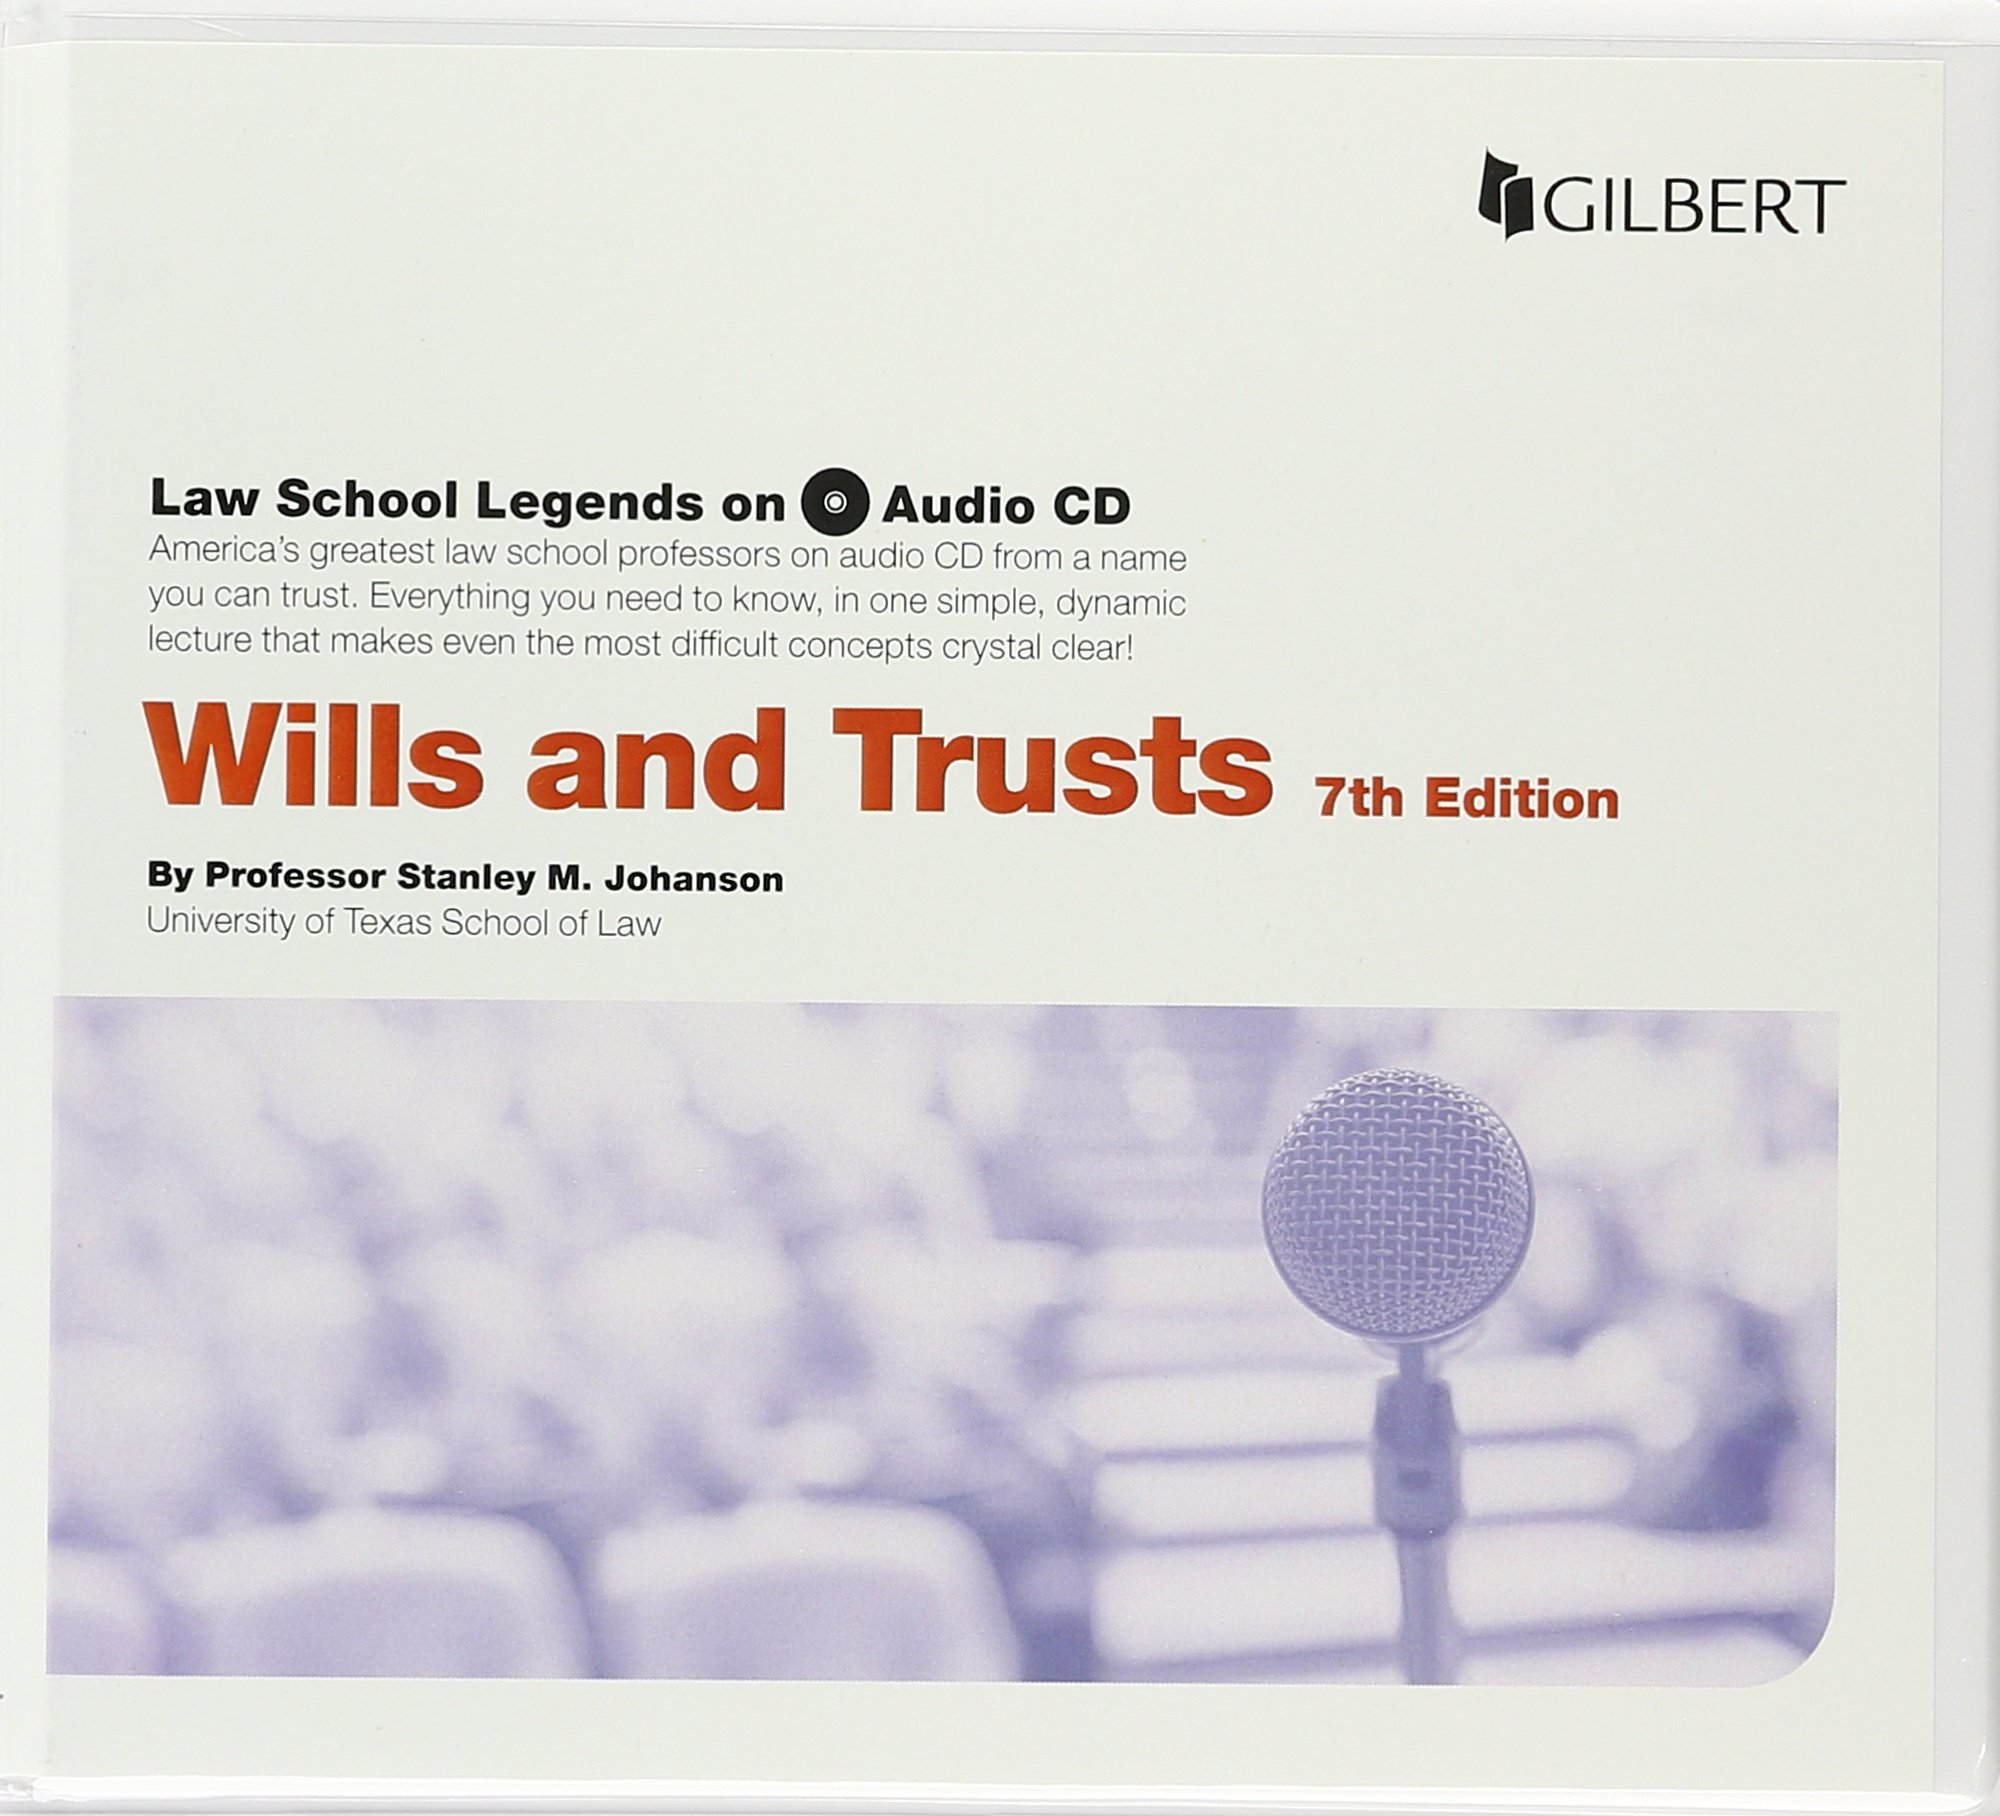 Law School Legends Audio on Wills and Trusts (Law School Legends Audio Series) by Gilbert